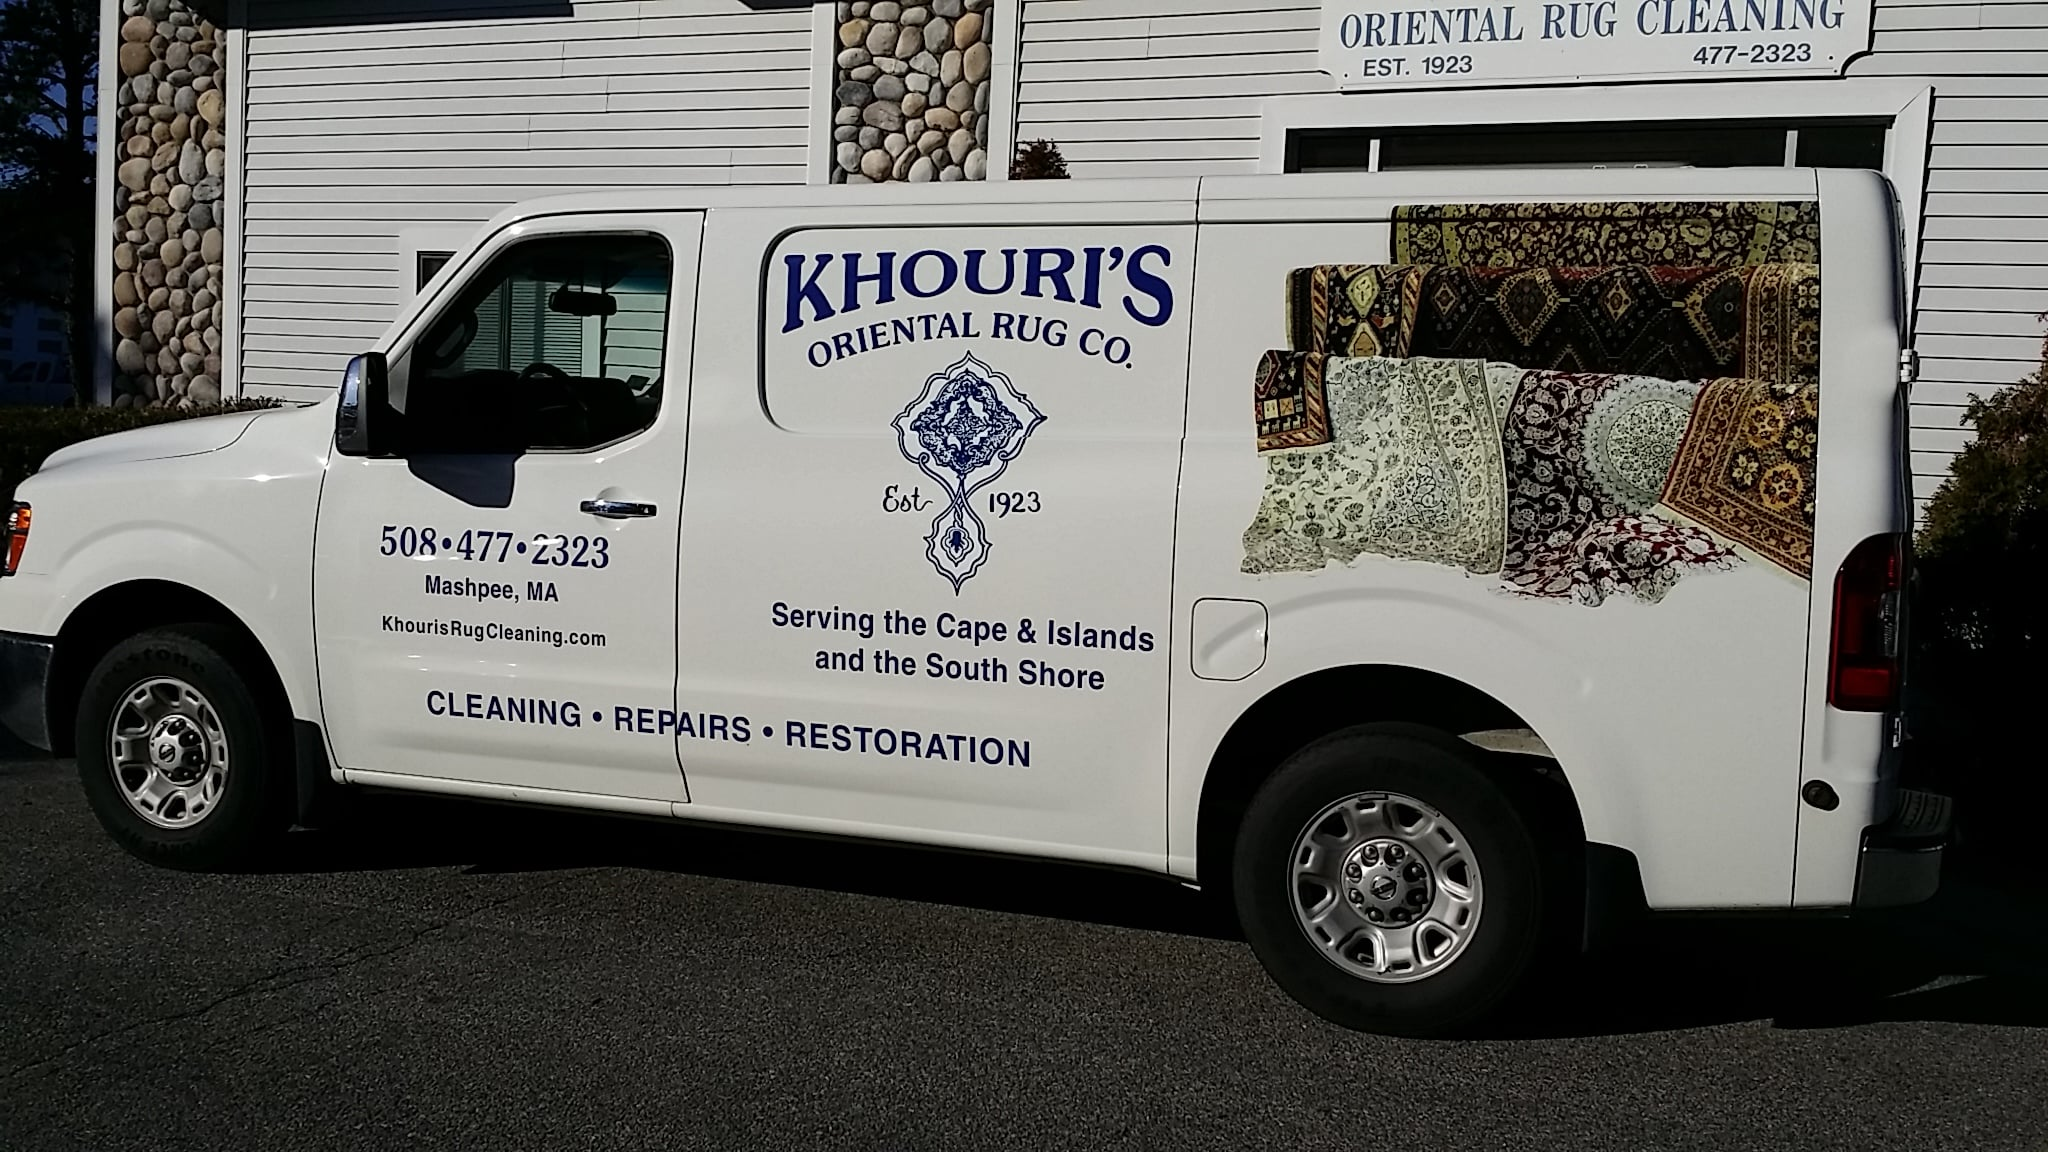 Rug Cleaning Pickup And Delivery Home Decor